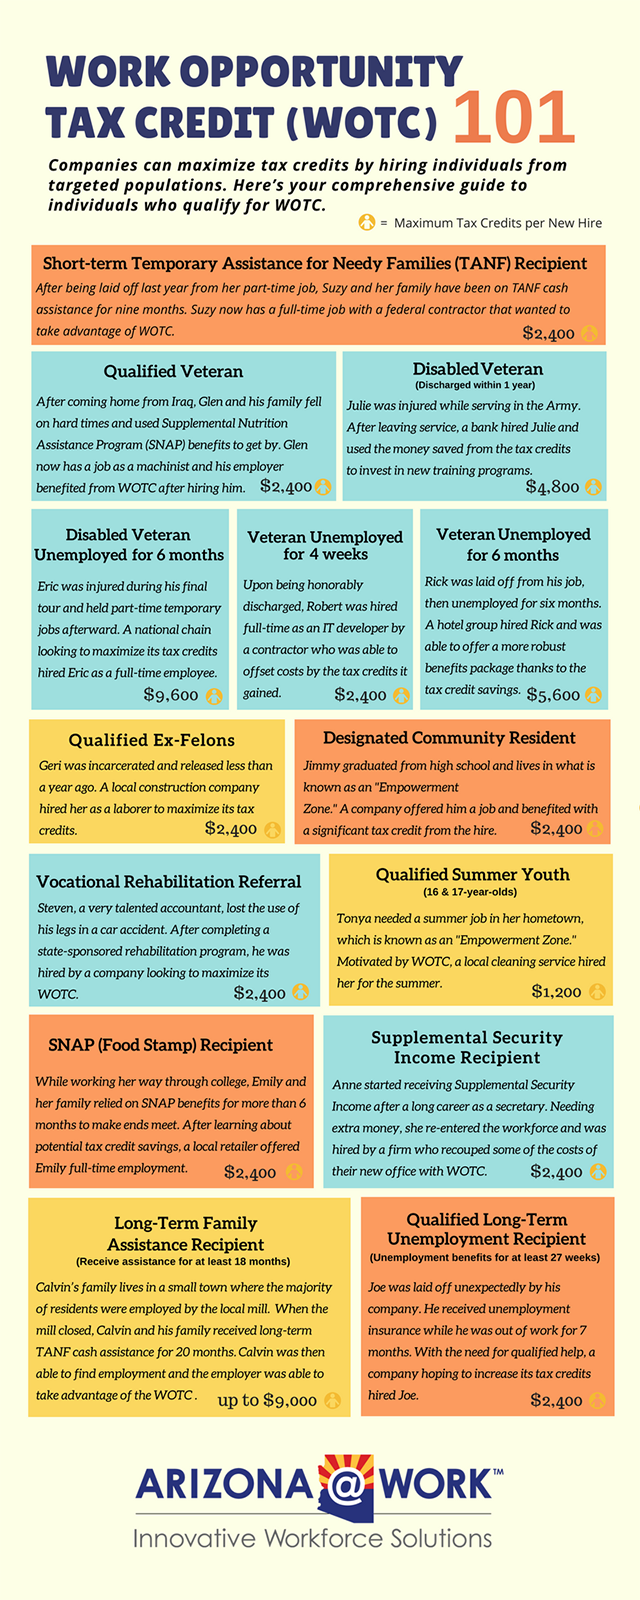 Work Opportunity Tax Credit Infographic